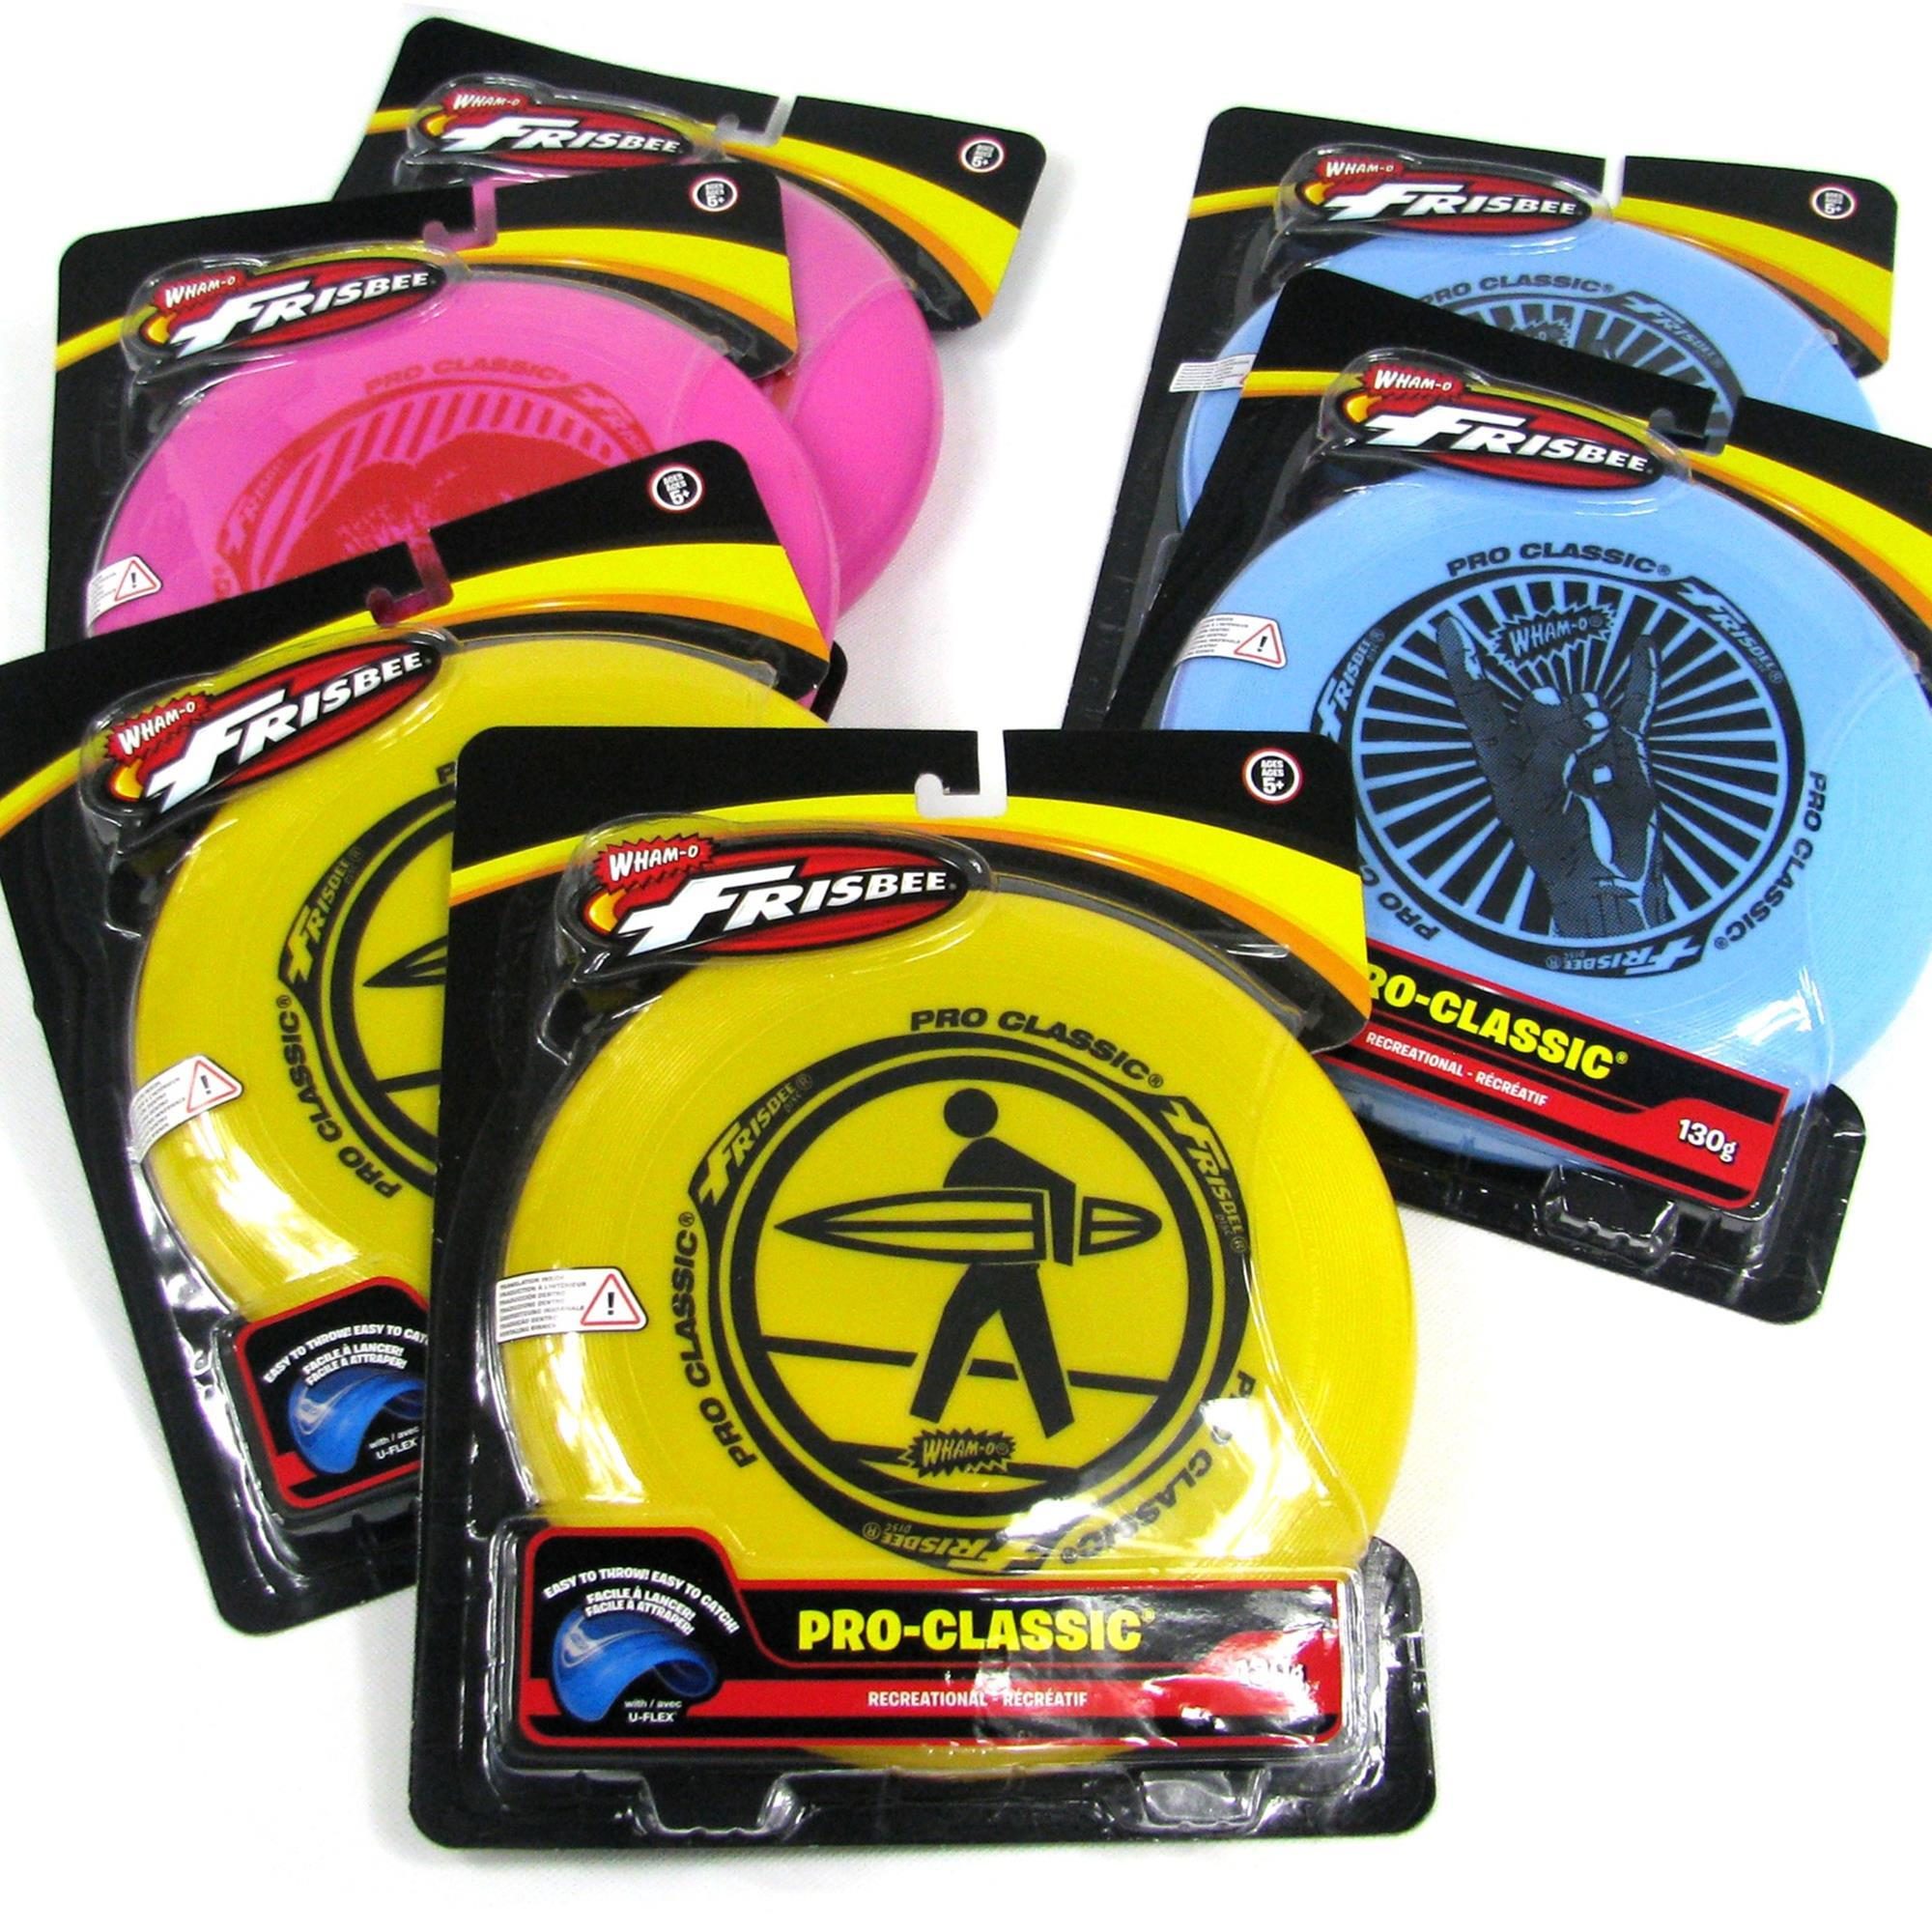 6x WHAM-O FRISBEE Wurfscheibe Pro Classic 130g